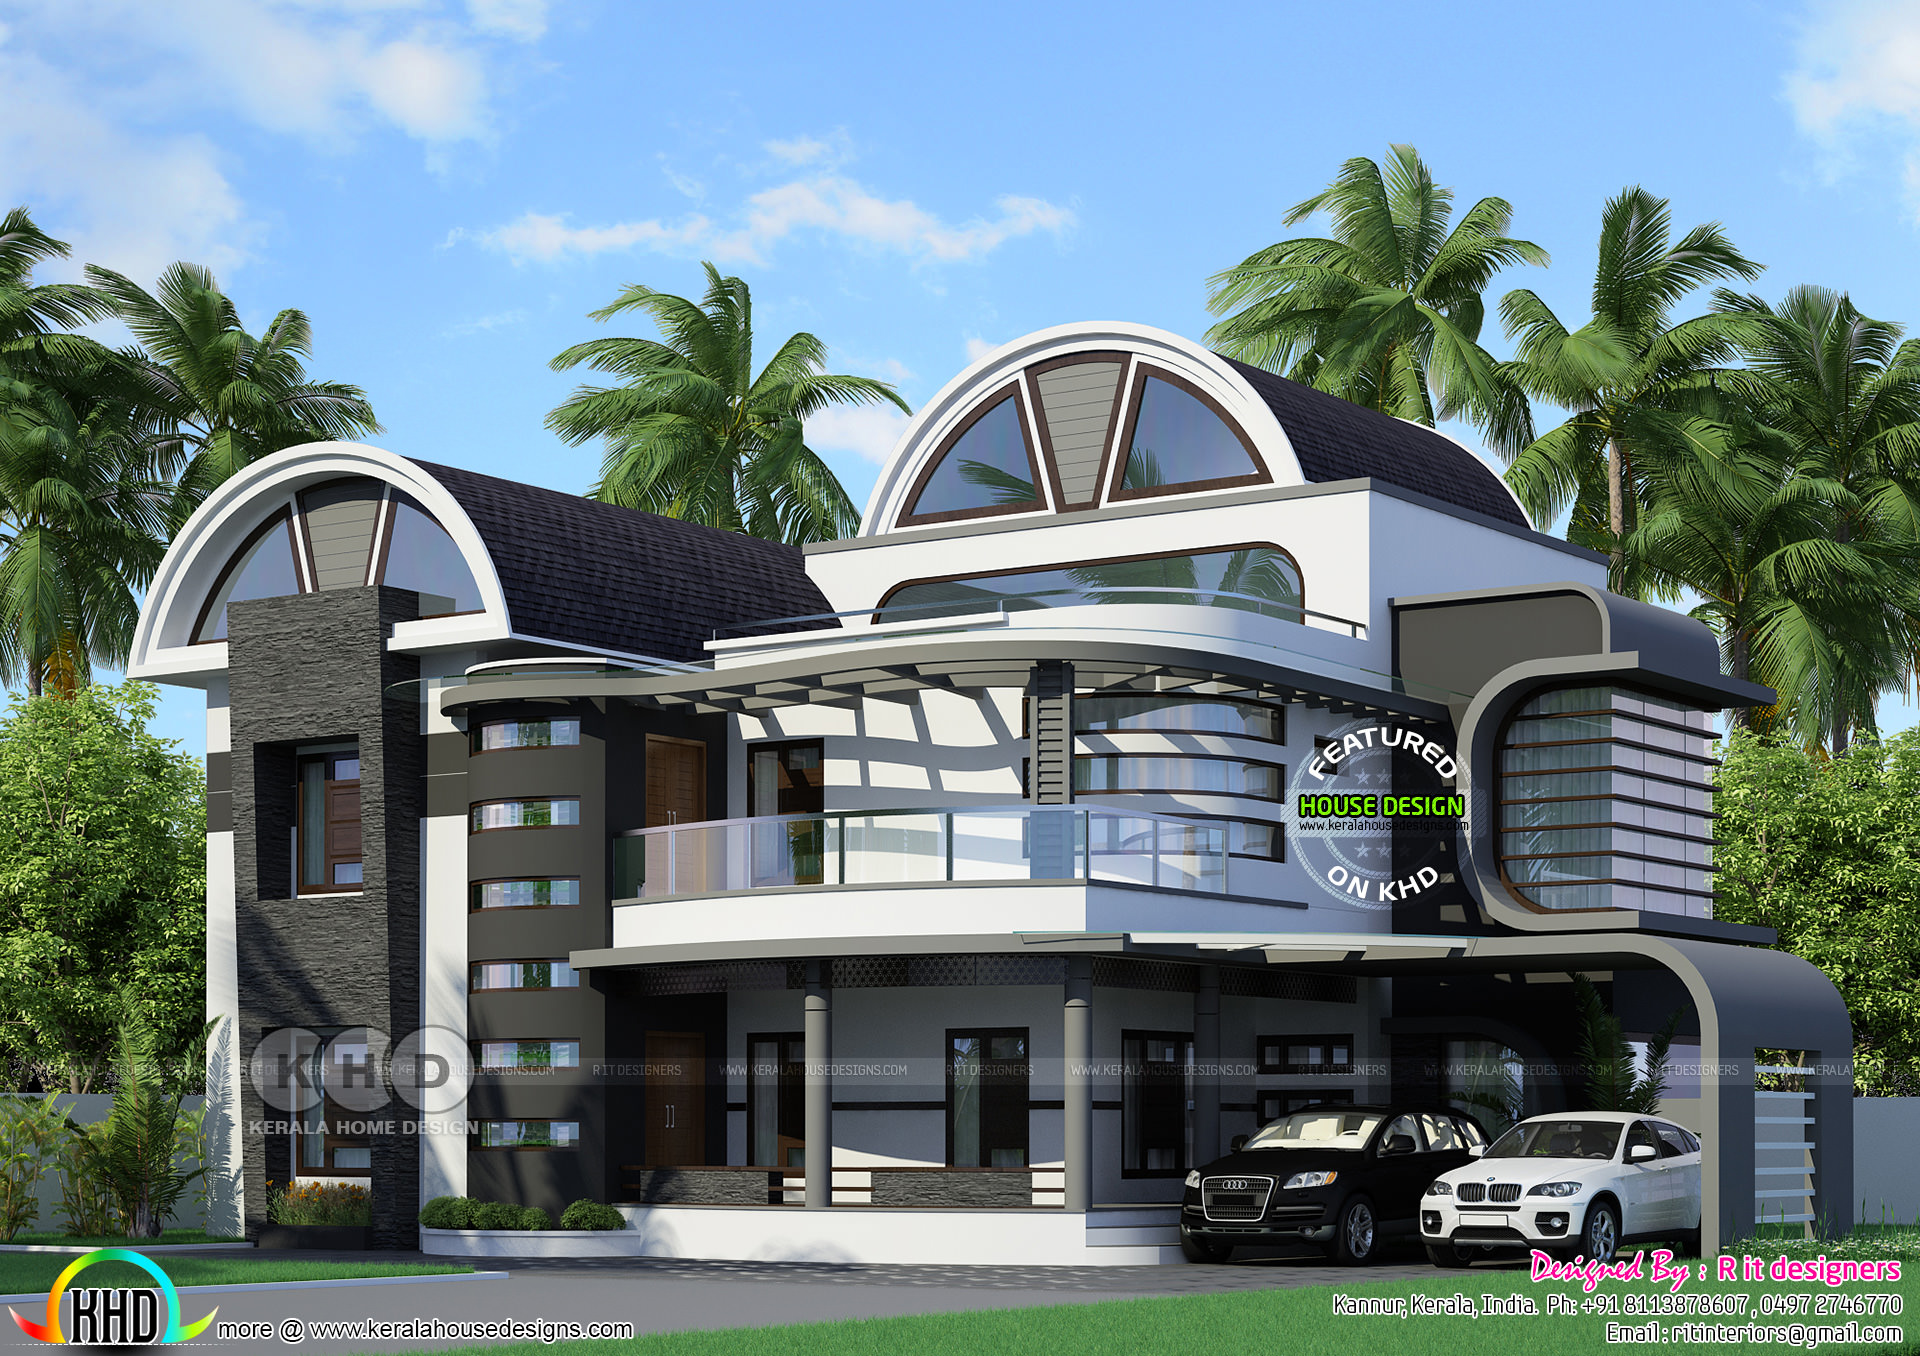 Half Round Roof Unique Kerala Home Design Kerala Home